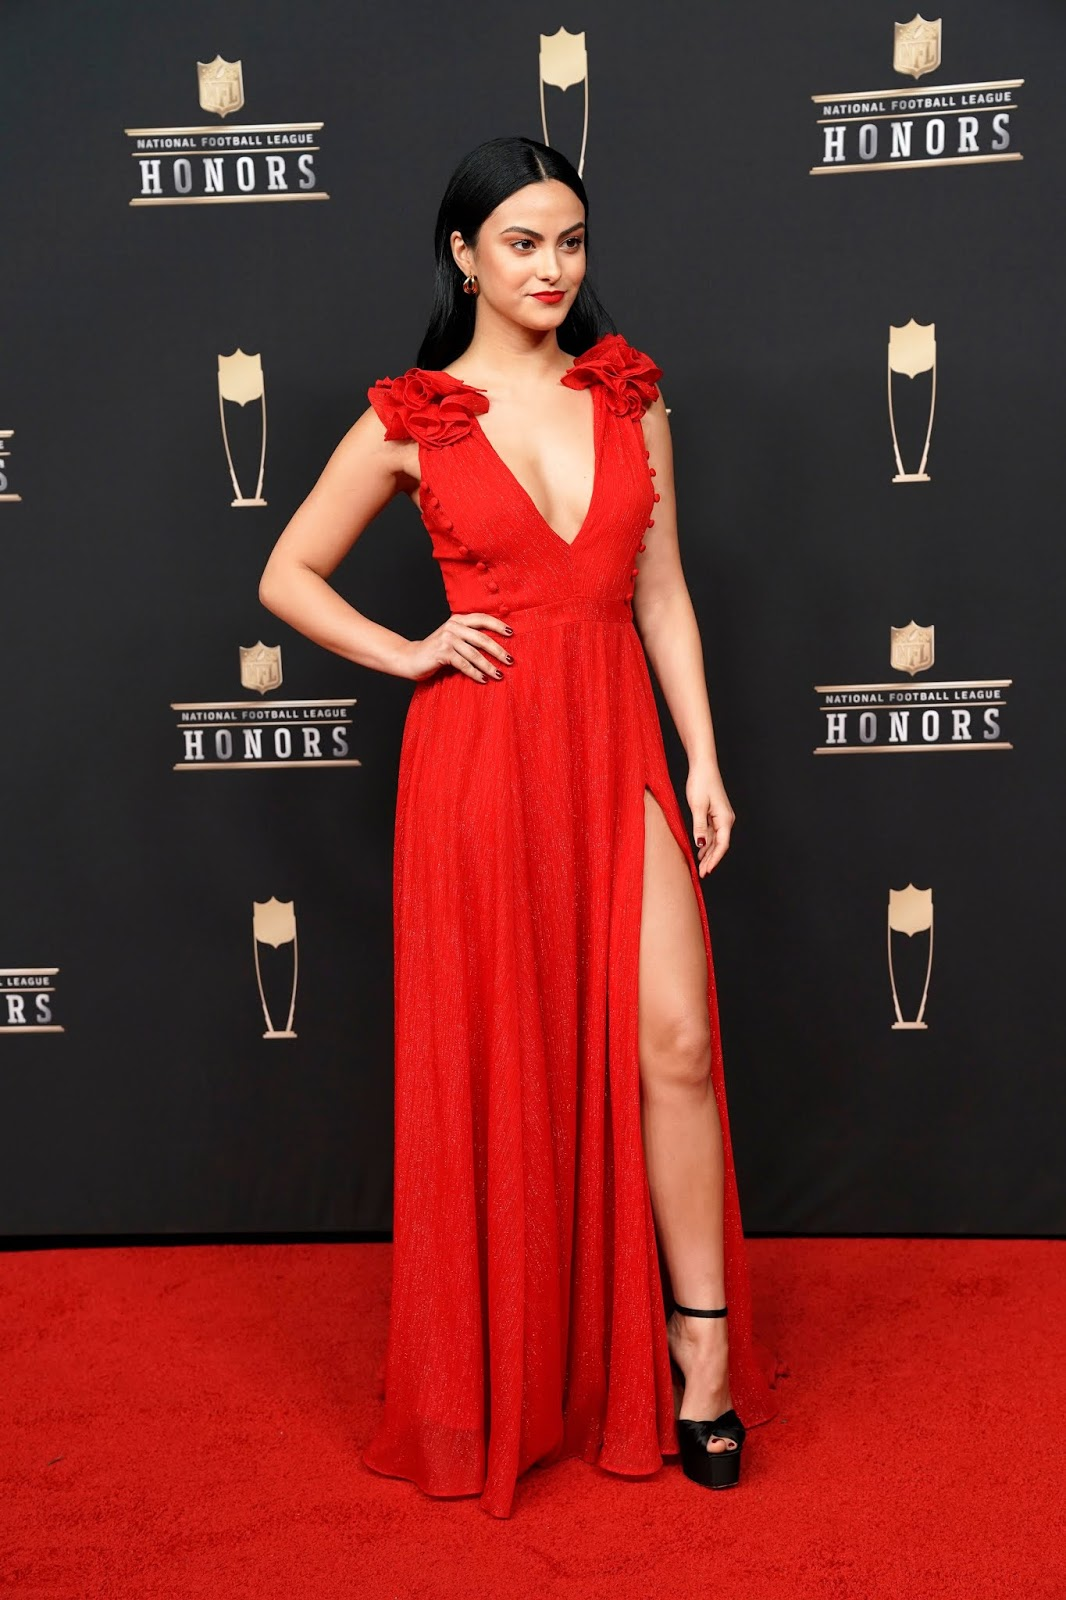 Camila Mendes - 8th Annual NFL Honors in Atlanta - 02/02/2019